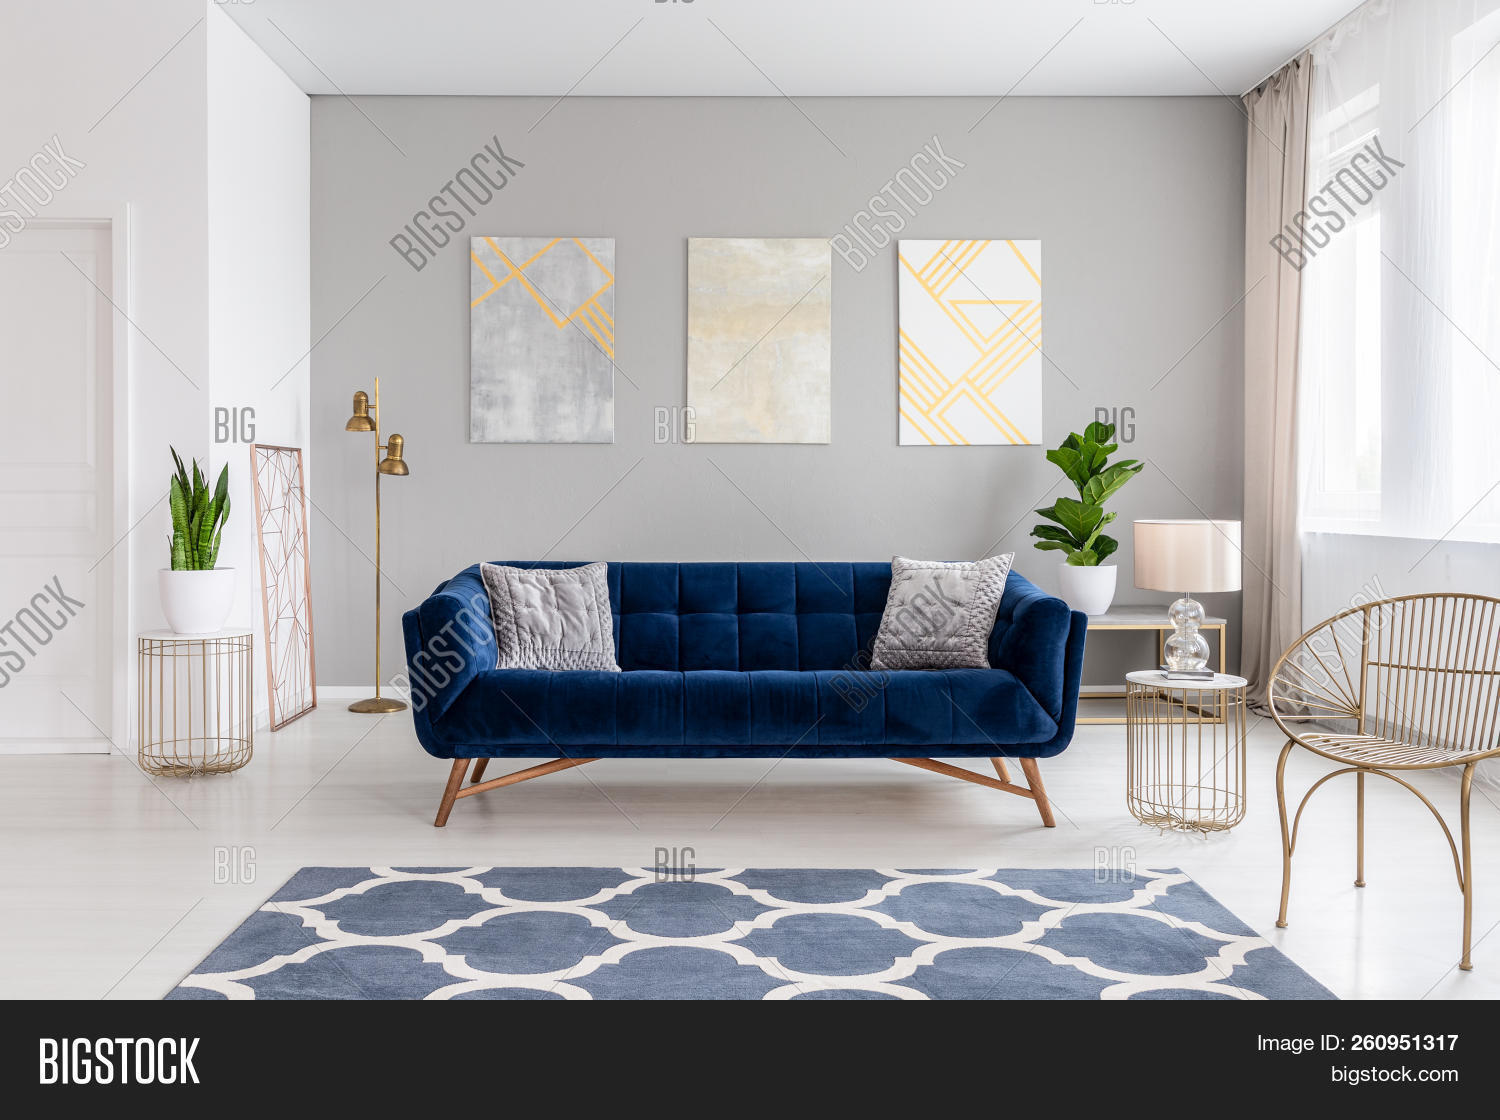 Pleasant Elegant Navy Blue Sofa Image Photo Free Trial Bigstock Gmtry Best Dining Table And Chair Ideas Images Gmtryco